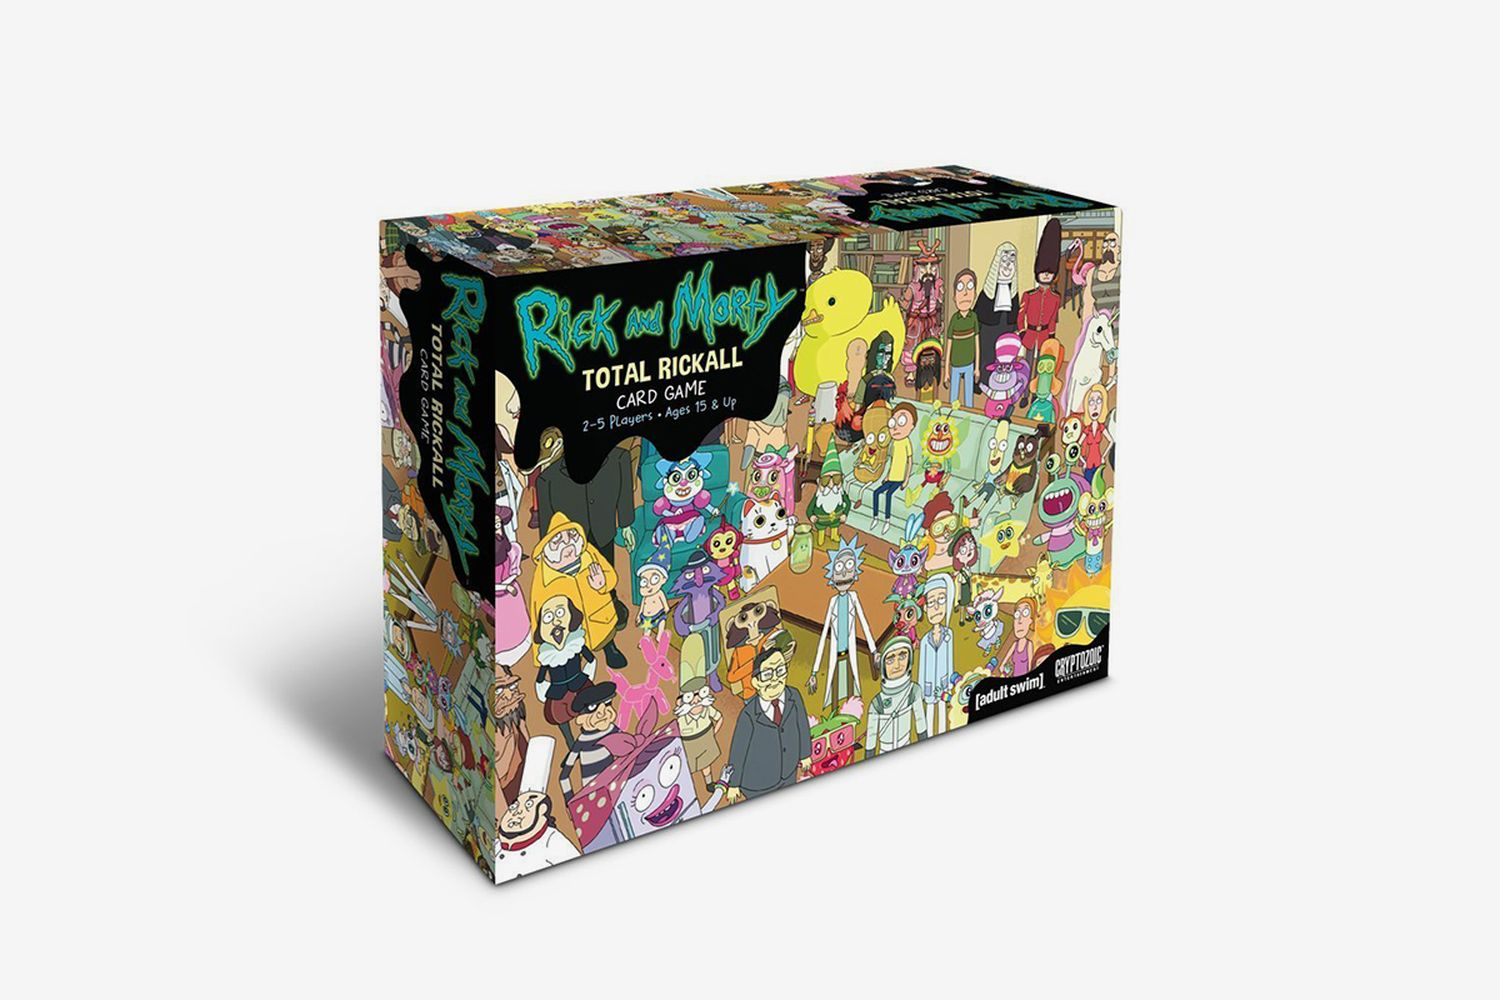 Rick and Morty 'Total Rickall' Cooperative Card Game